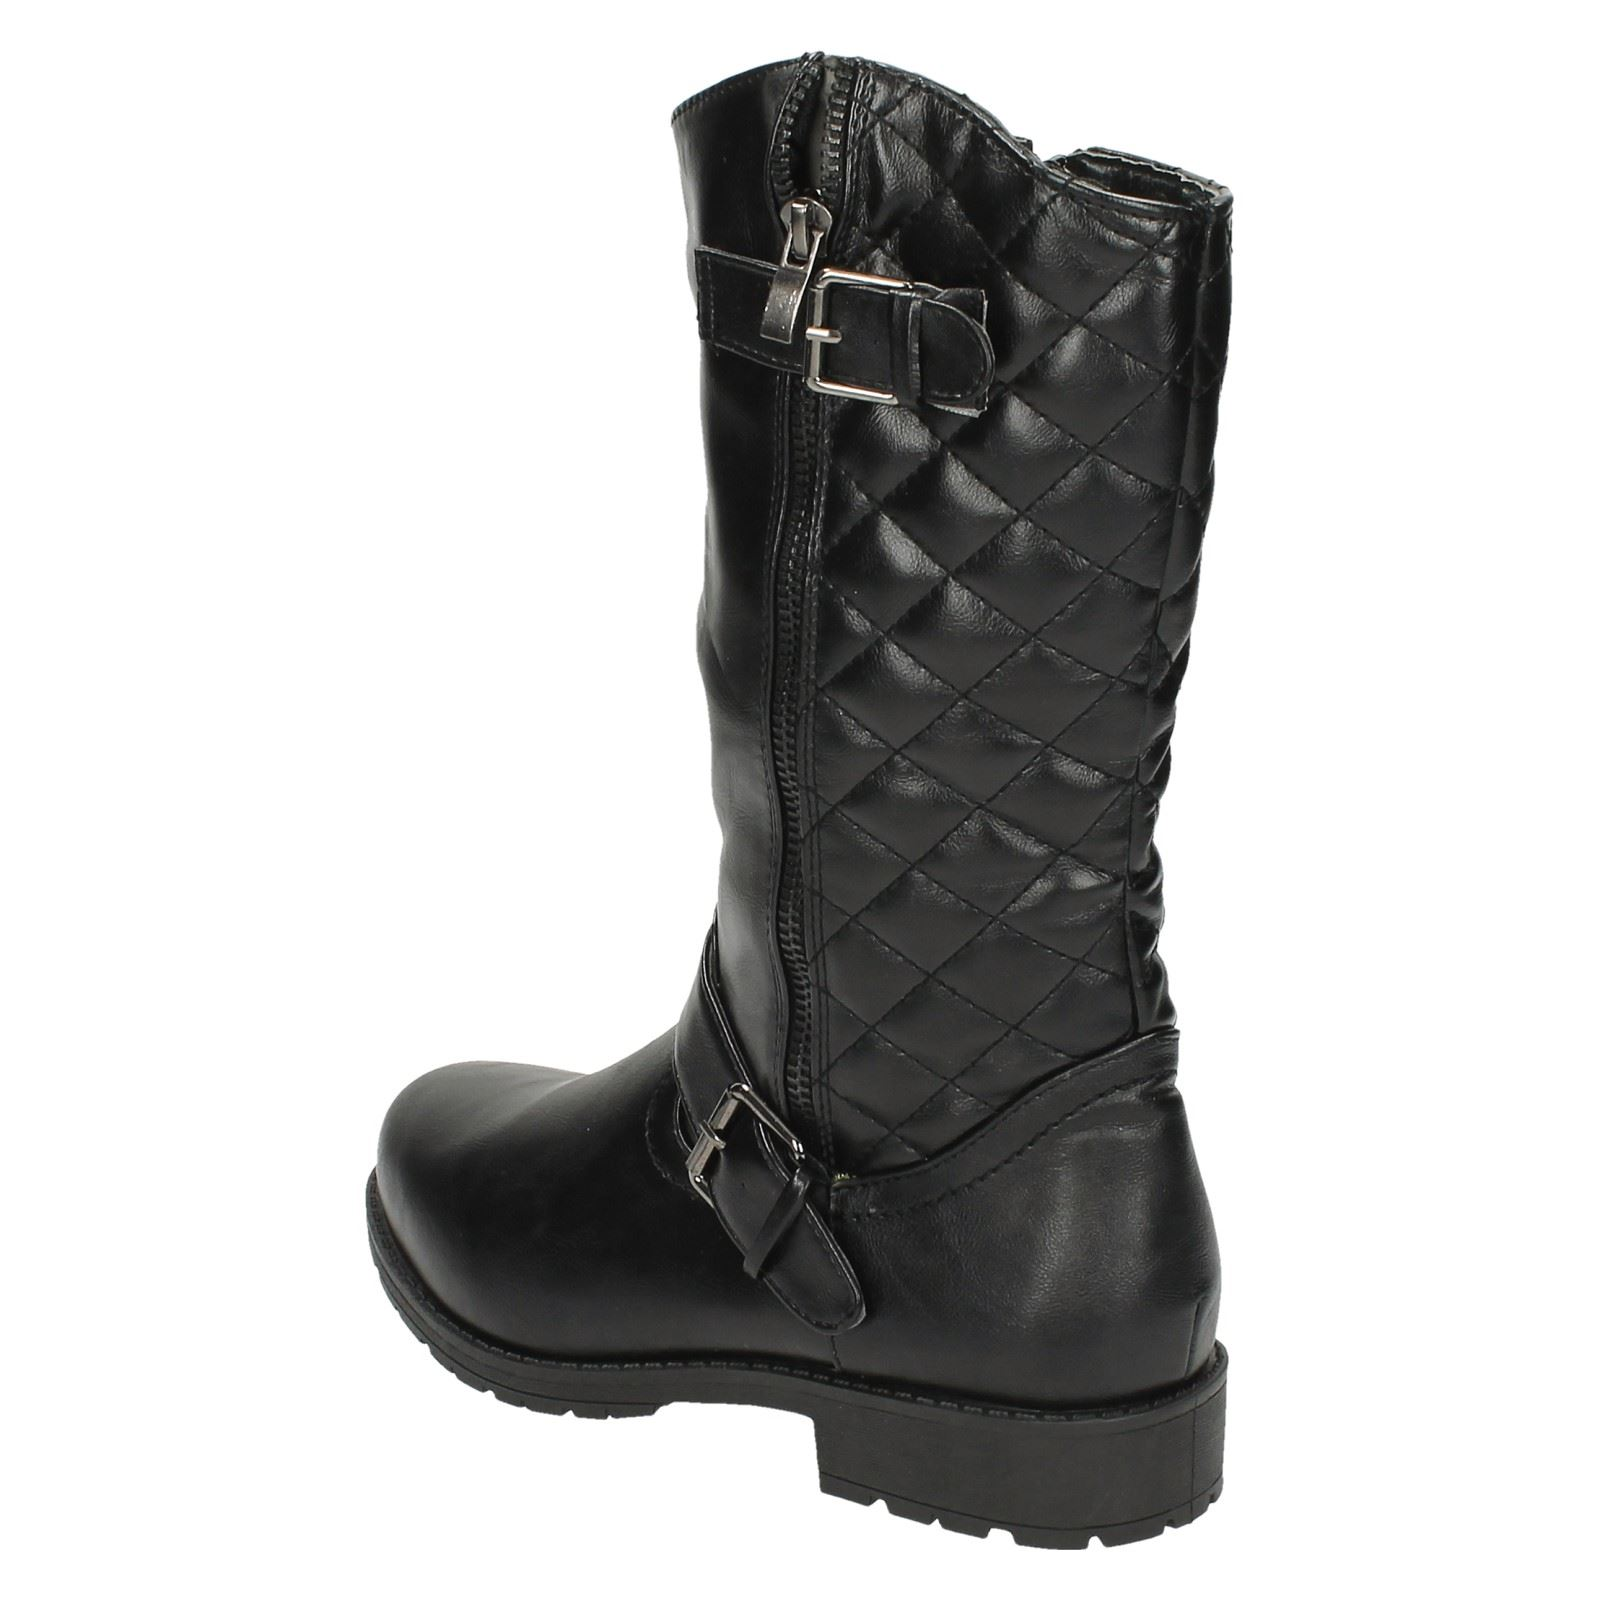 Shop trend-right boots and booties for women at Nine West in a wide collection of sizes and styles from riding boots to over-the-knee boots. Free Shipping available.